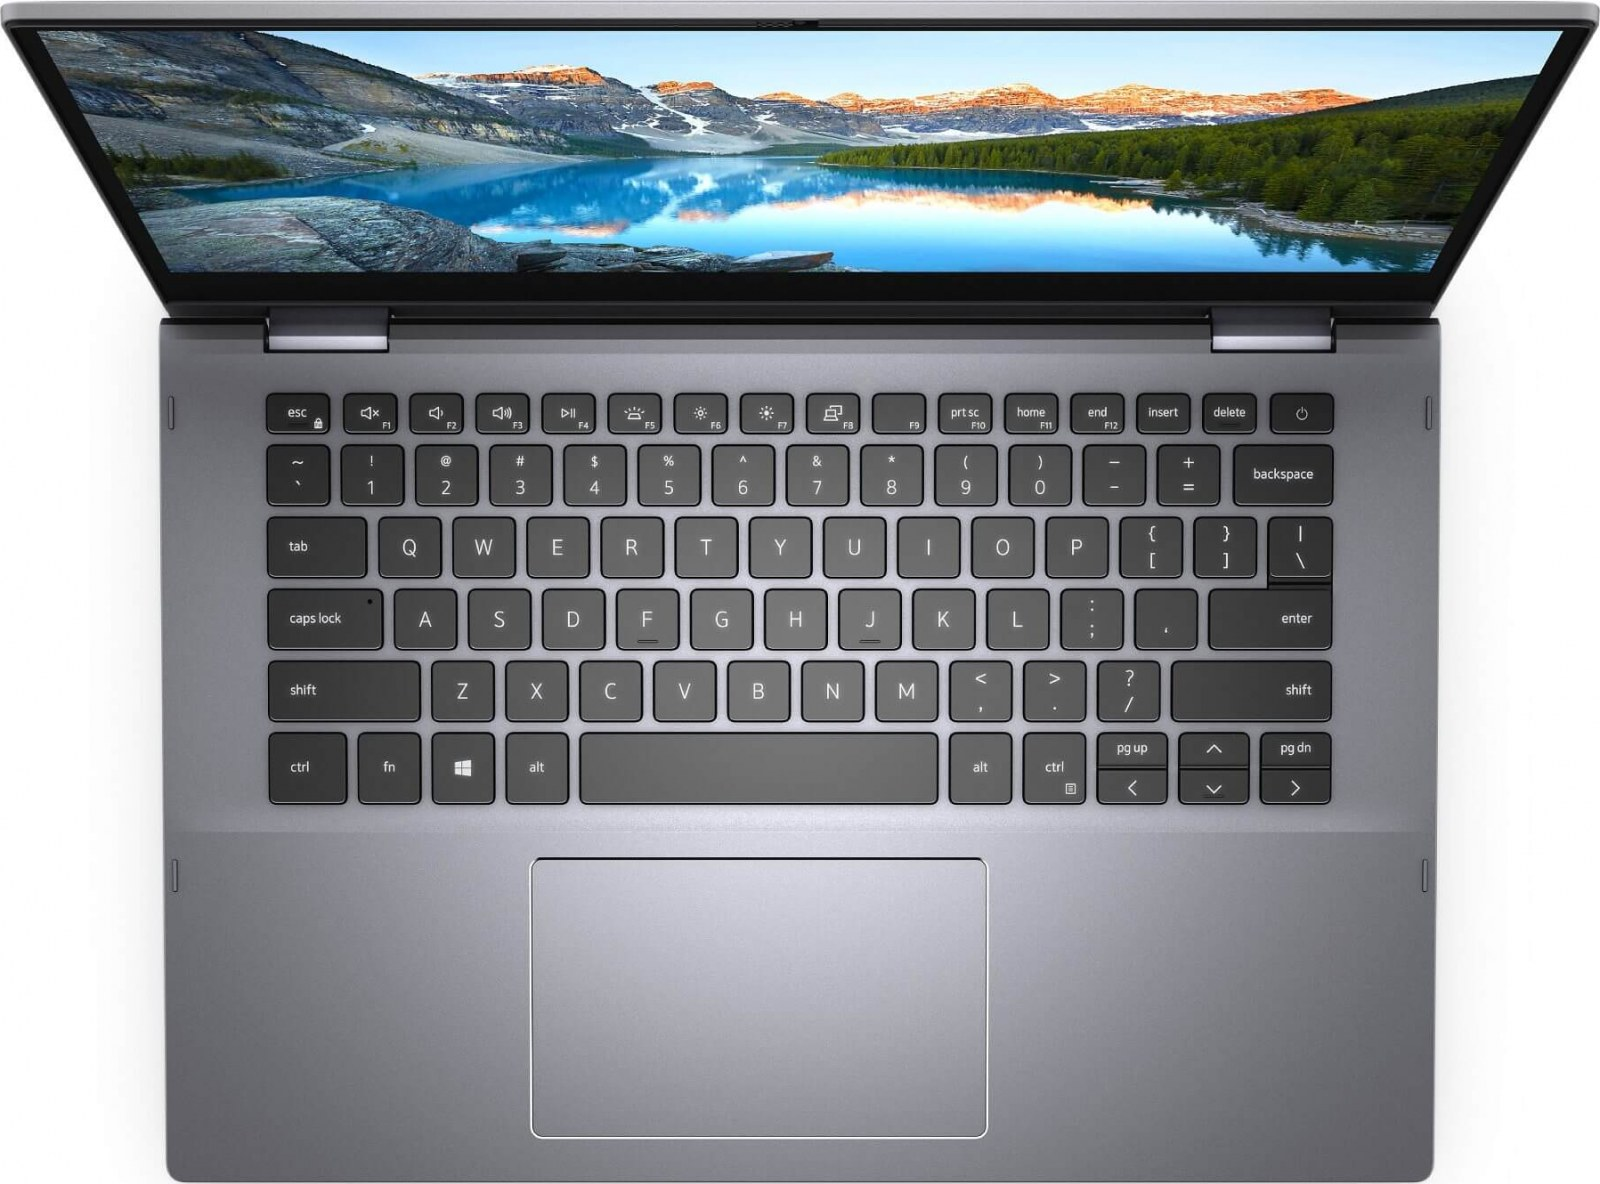 Inspiron (14 5406 2-in-1) photo 4